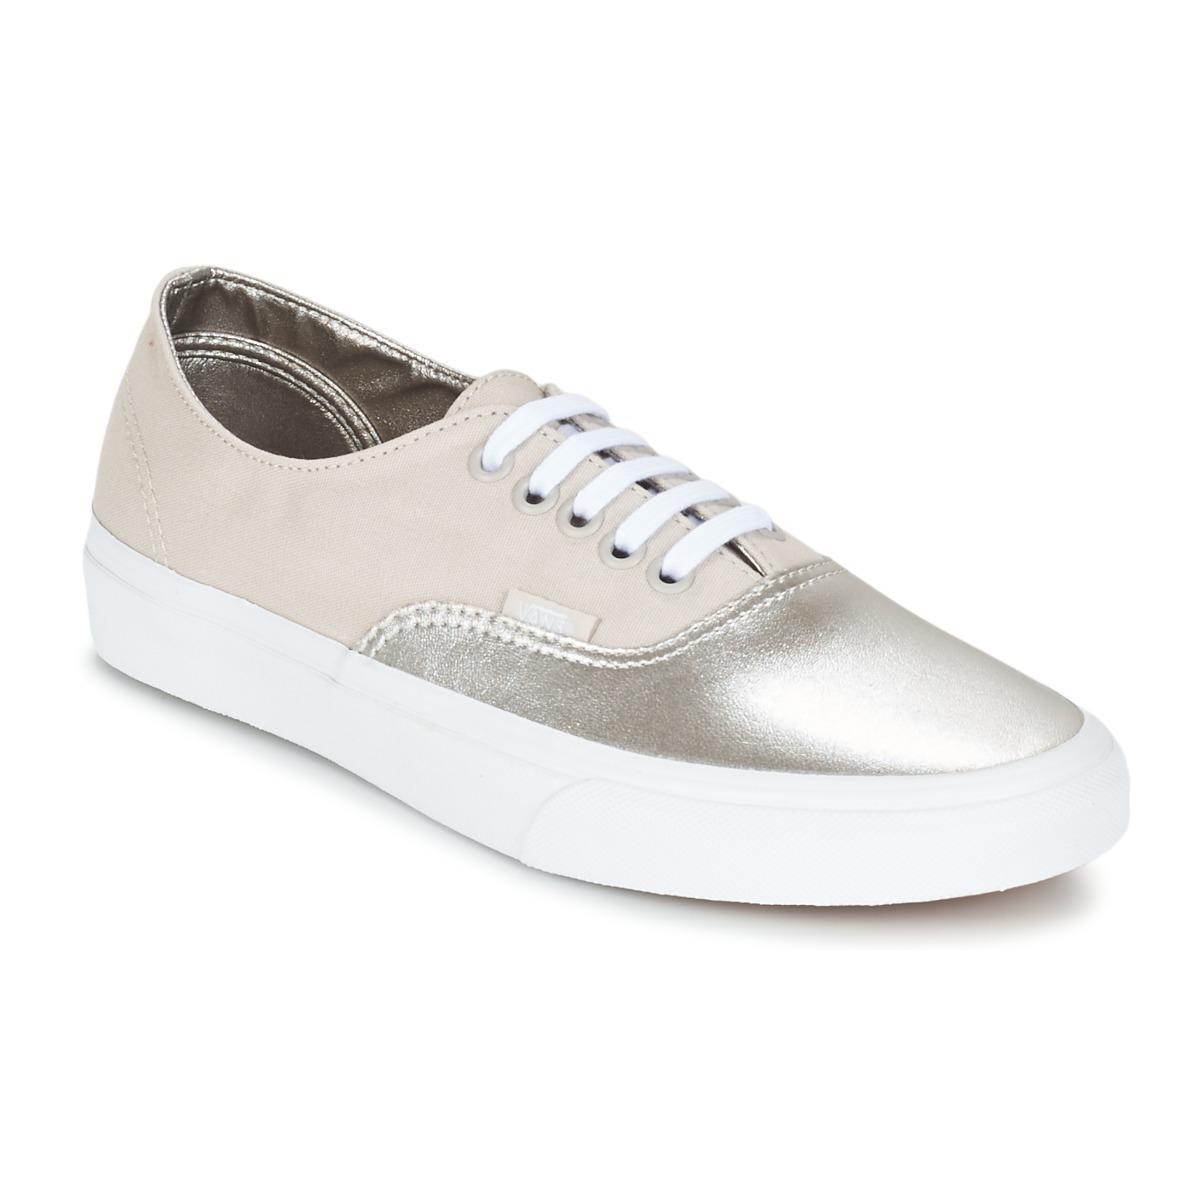 3bb19d0196 Vans Authentic Decon Women s Shoes (trainers) In Silver in Metallic ...